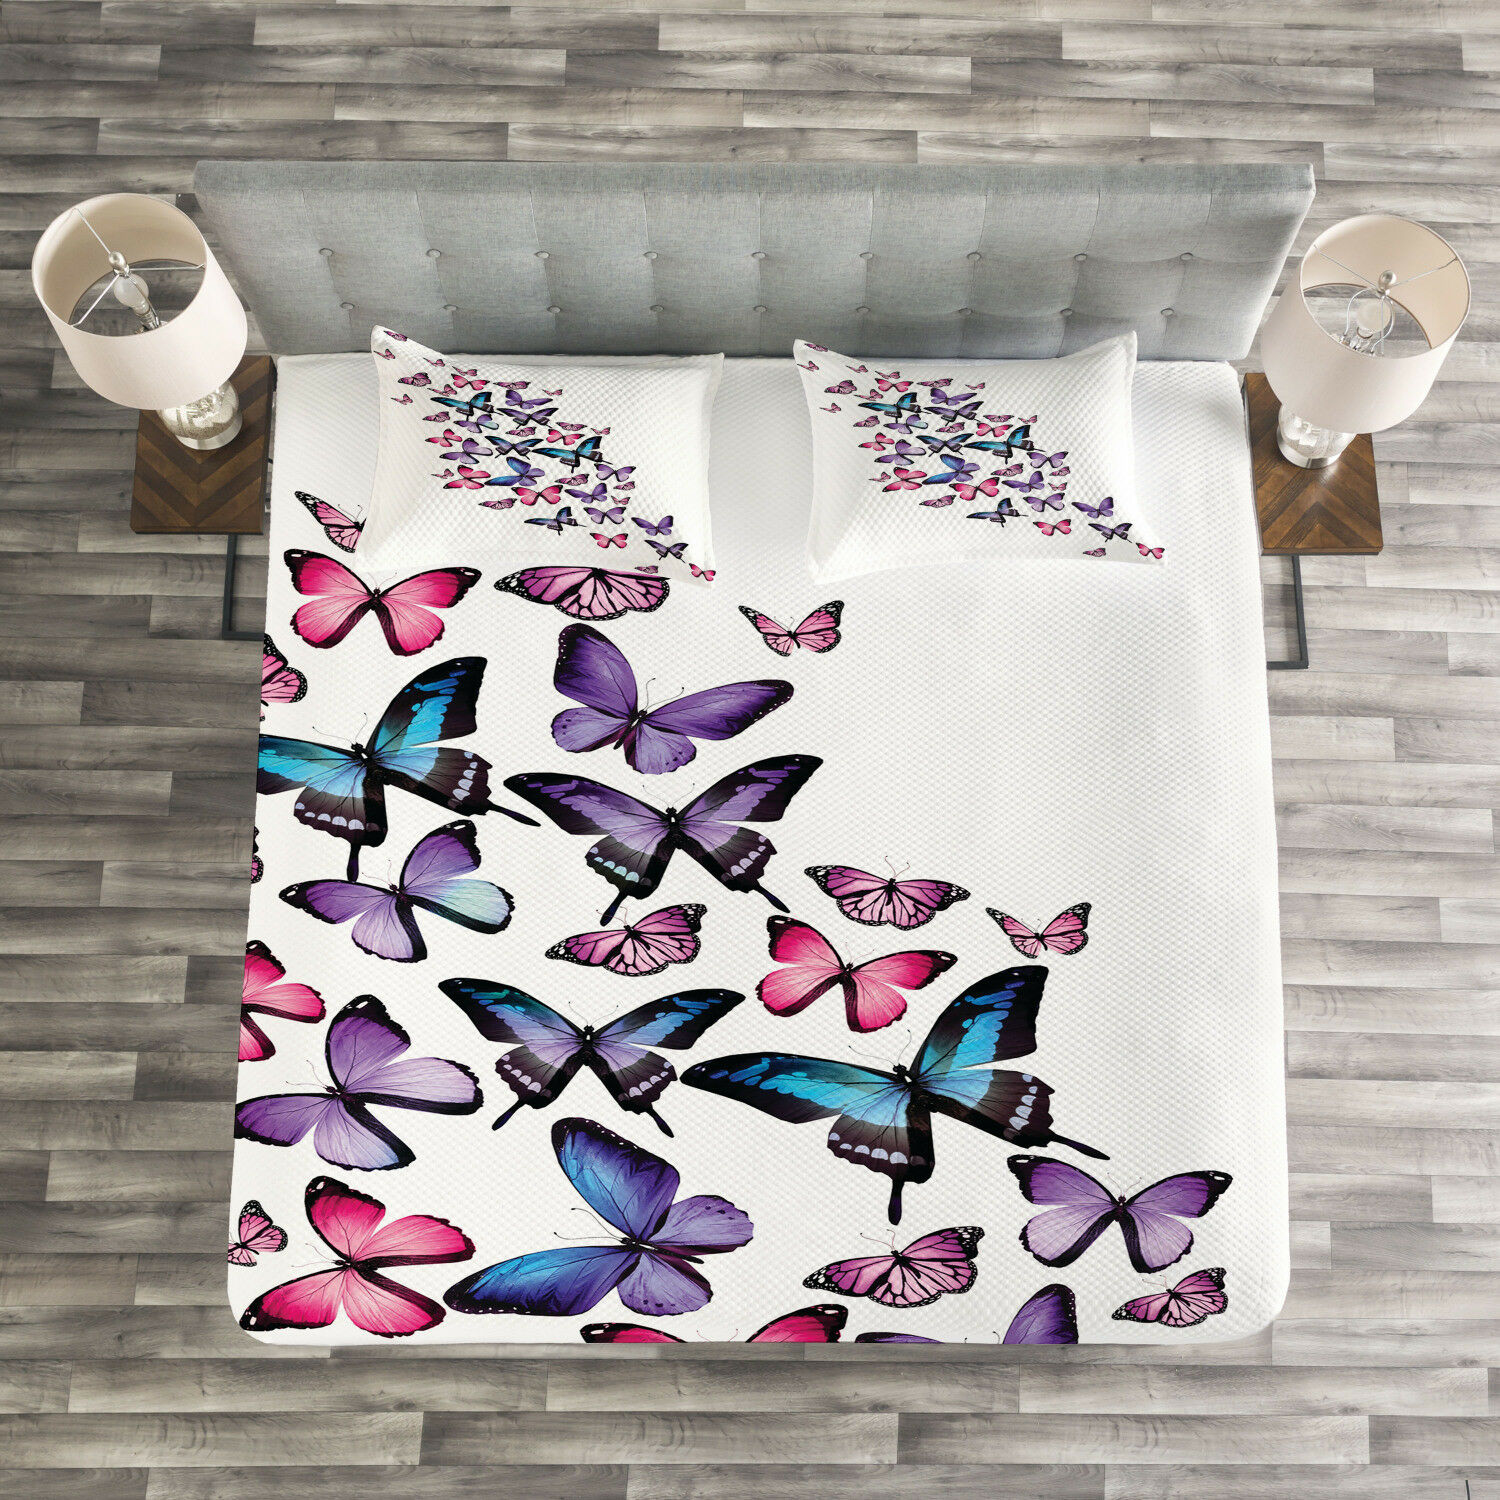 Butterfly Quilted Bedspread & Pillow Shams Set, Cute Wings Feminine Print